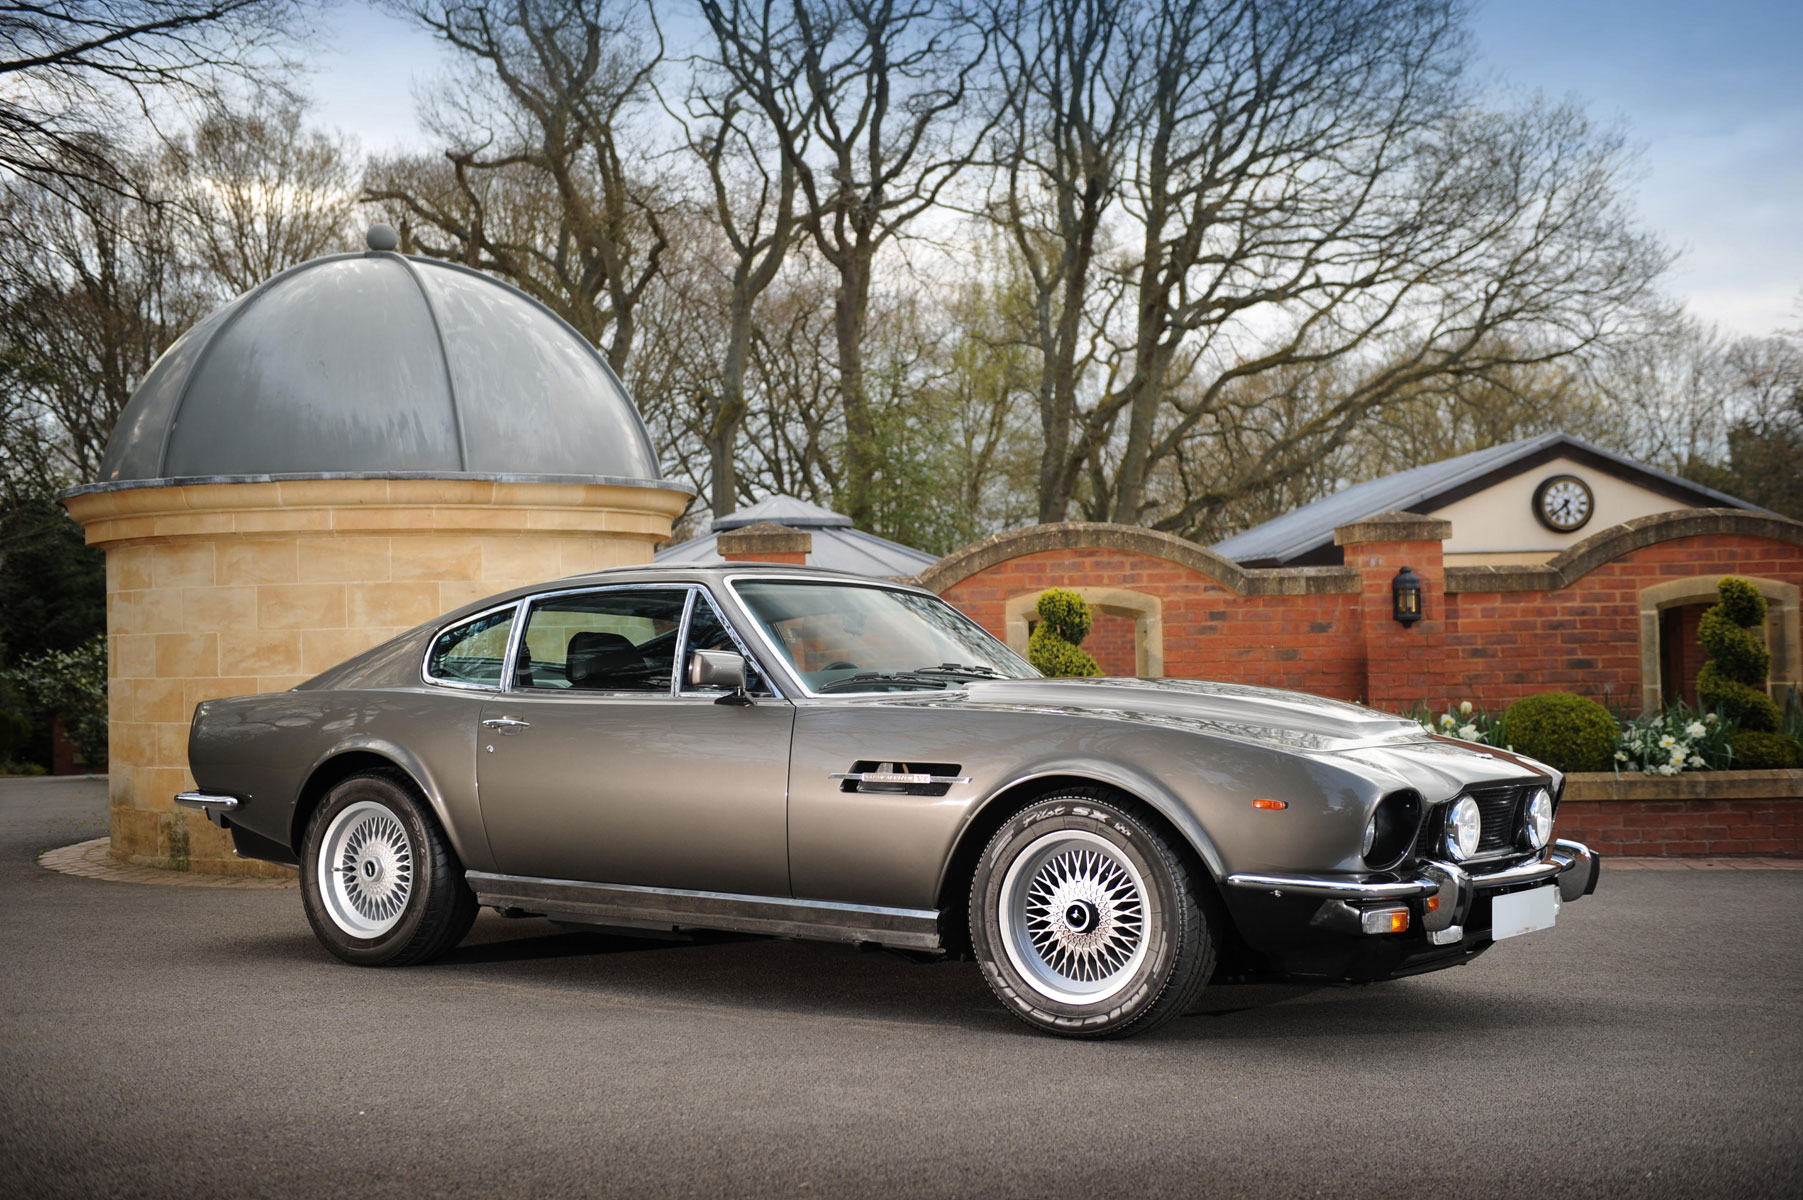 James Bonds Aston Martin V Vantage Saloon At Bonhams Aston Martin - Aston martin v8 for sale